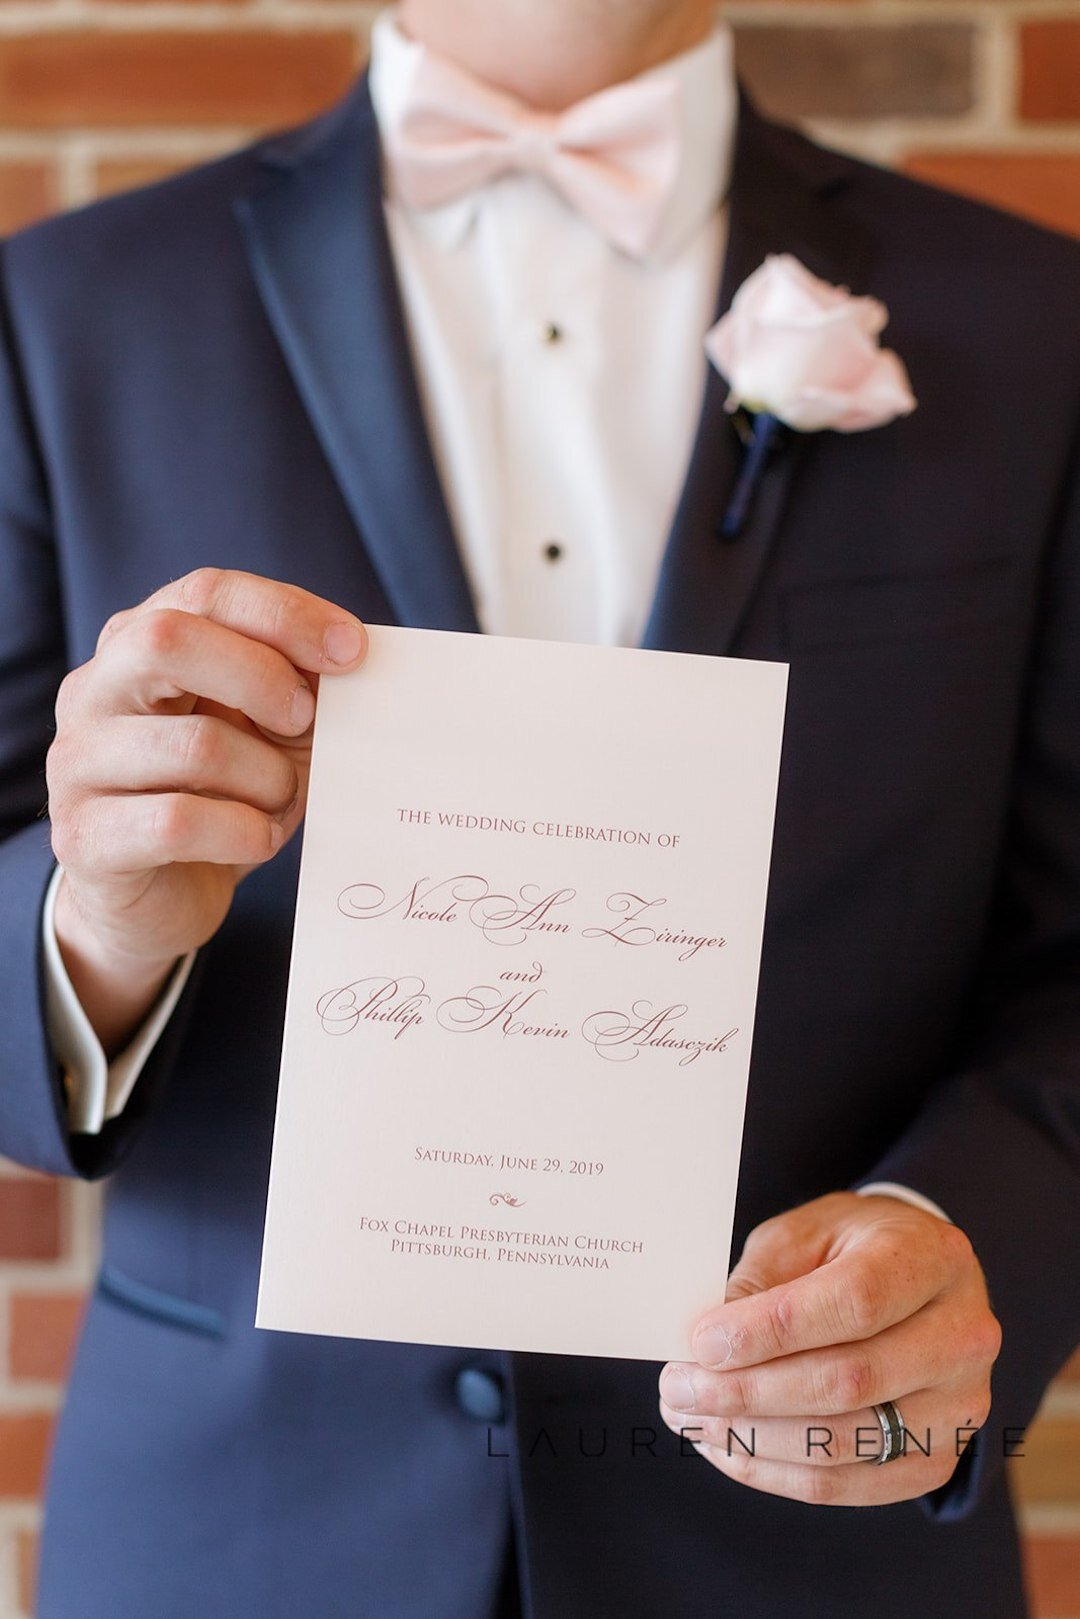 Clean and classic wedding programs: Romantic Blush Wedding at the Pittsburgh Field Club planned by Exhale Events. See more at exhale-events.com!